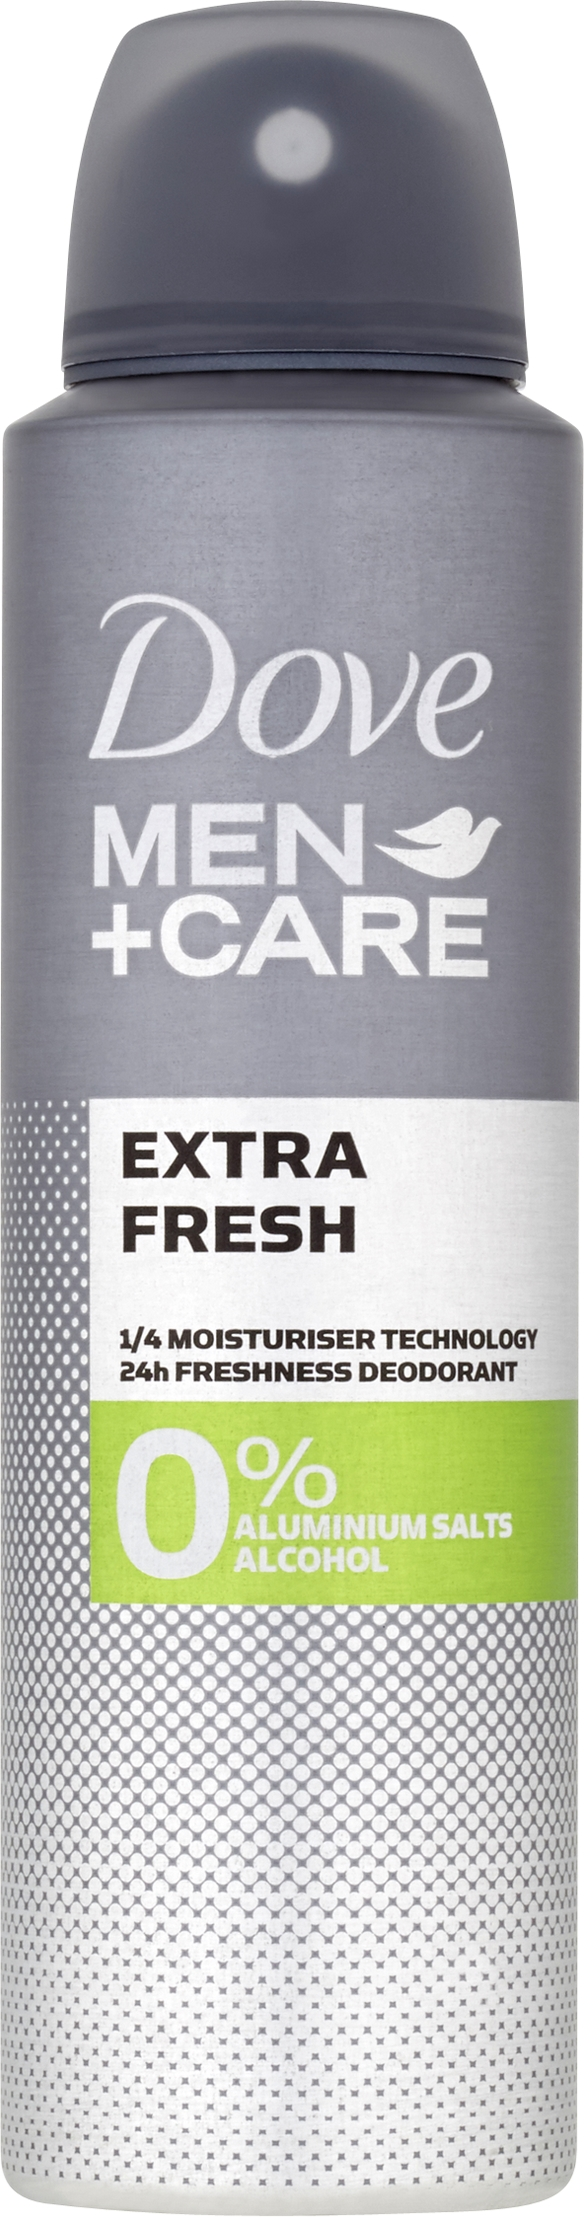 DOVE Alu-free Men  Care Deo spray Extra fresh 150 ml